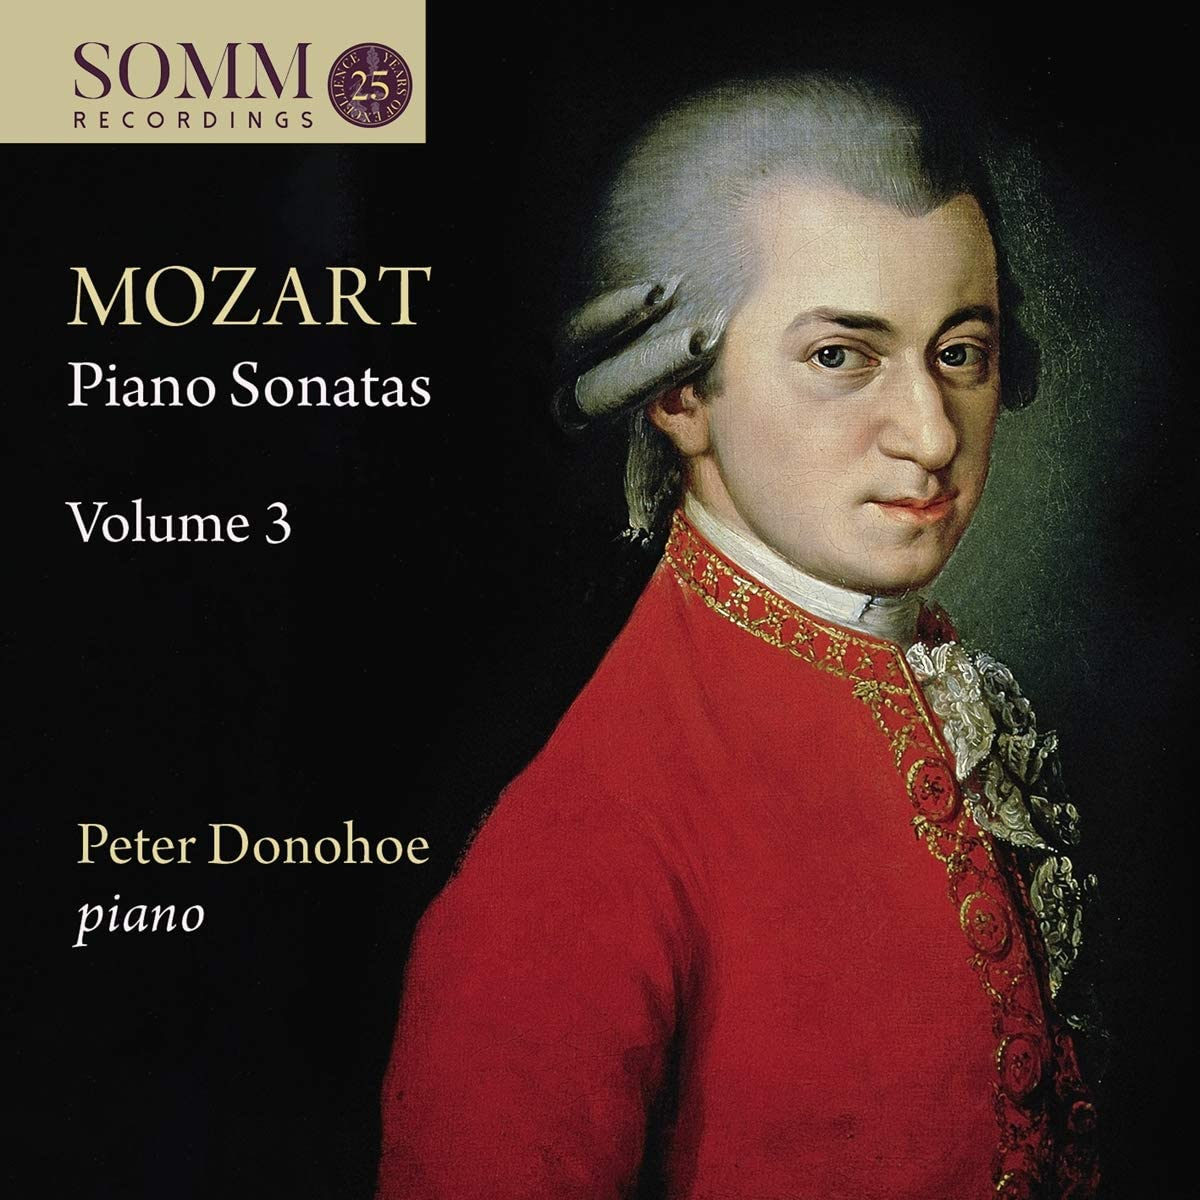 Review of MOZART Piano Sonatas, Vol 3 (Peter Donohoe)